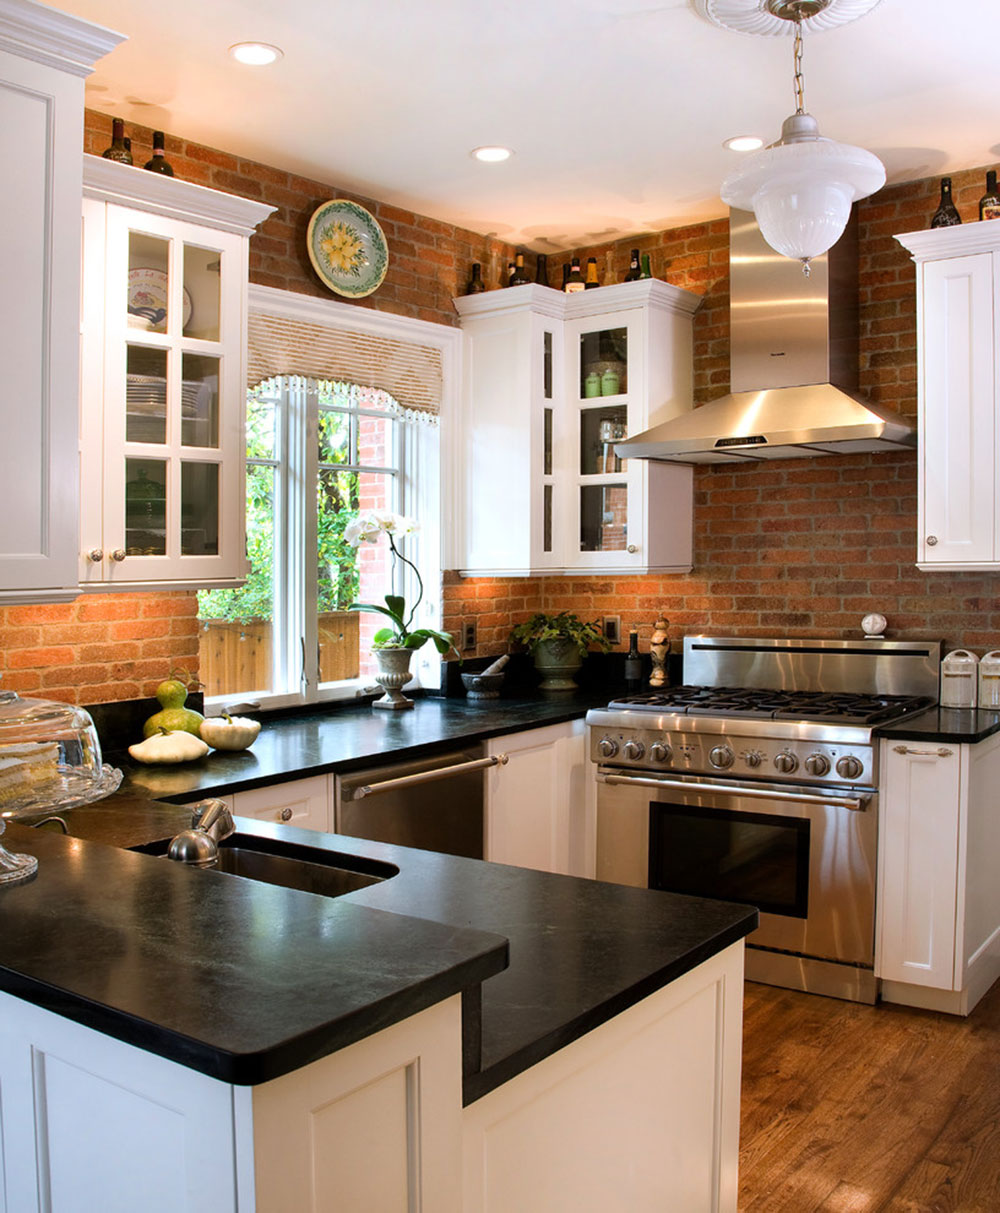 Modern-Kitchen-Backsplash-Ideas14 Modern Brick Backsplash Kitchen Ideas